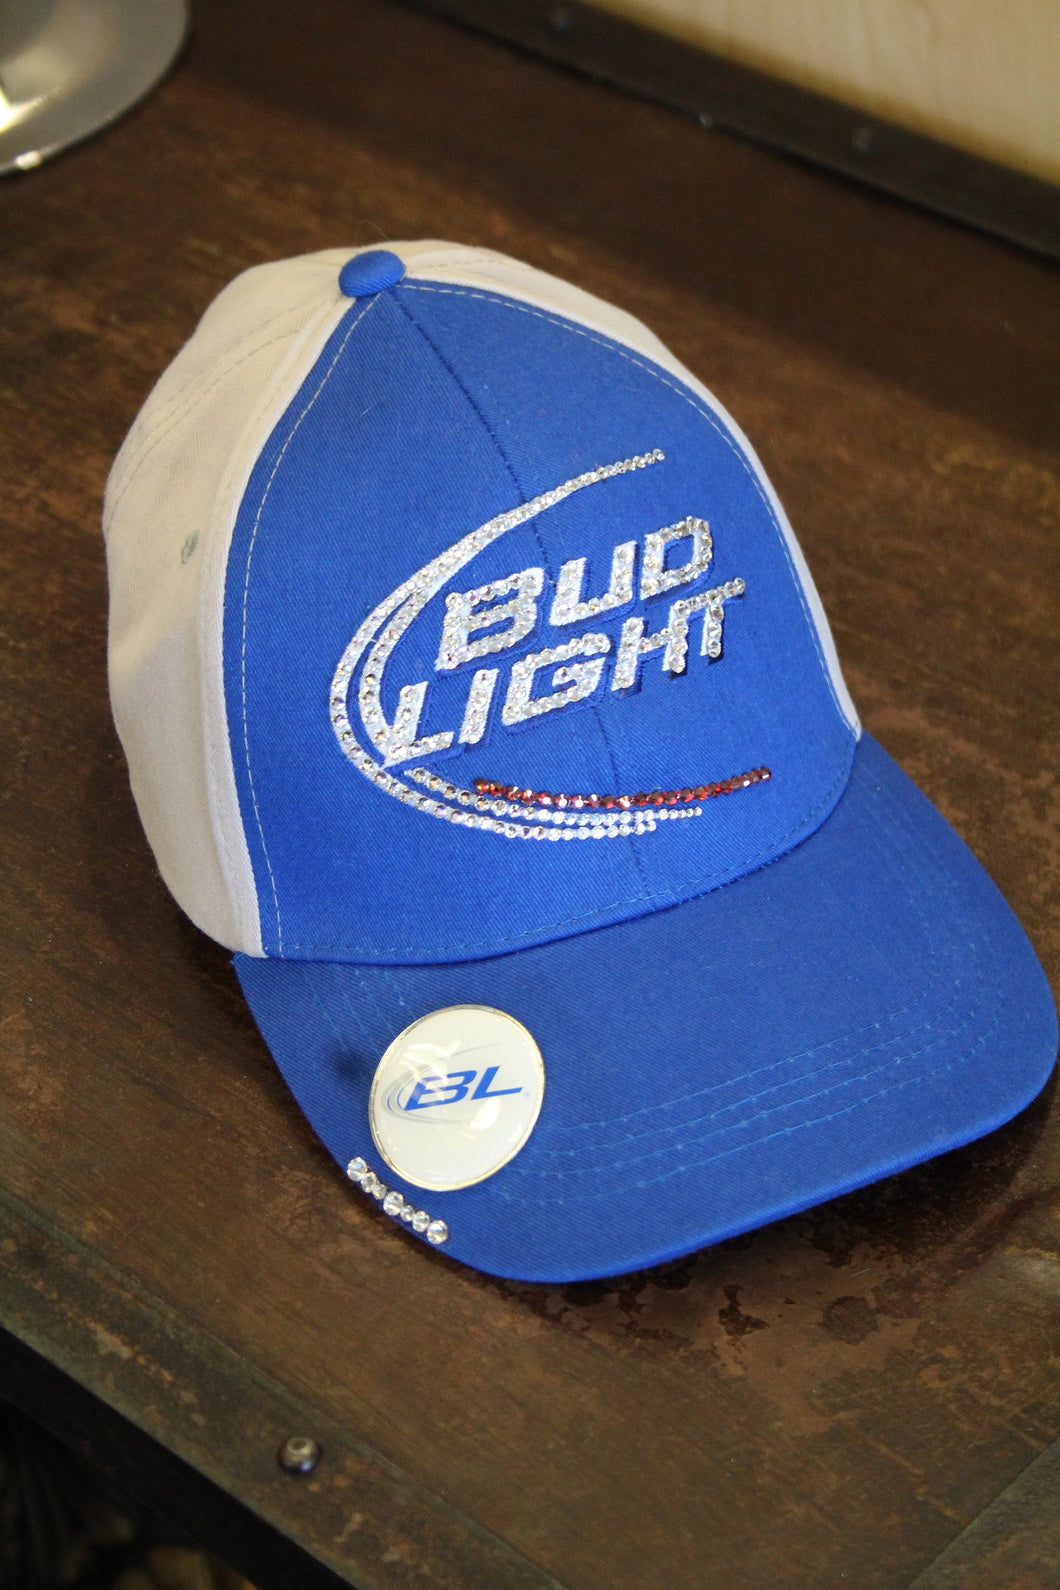 Perfect ... Bud Light | Embellished Blue/Grey Ball Cap ... Great Pictures